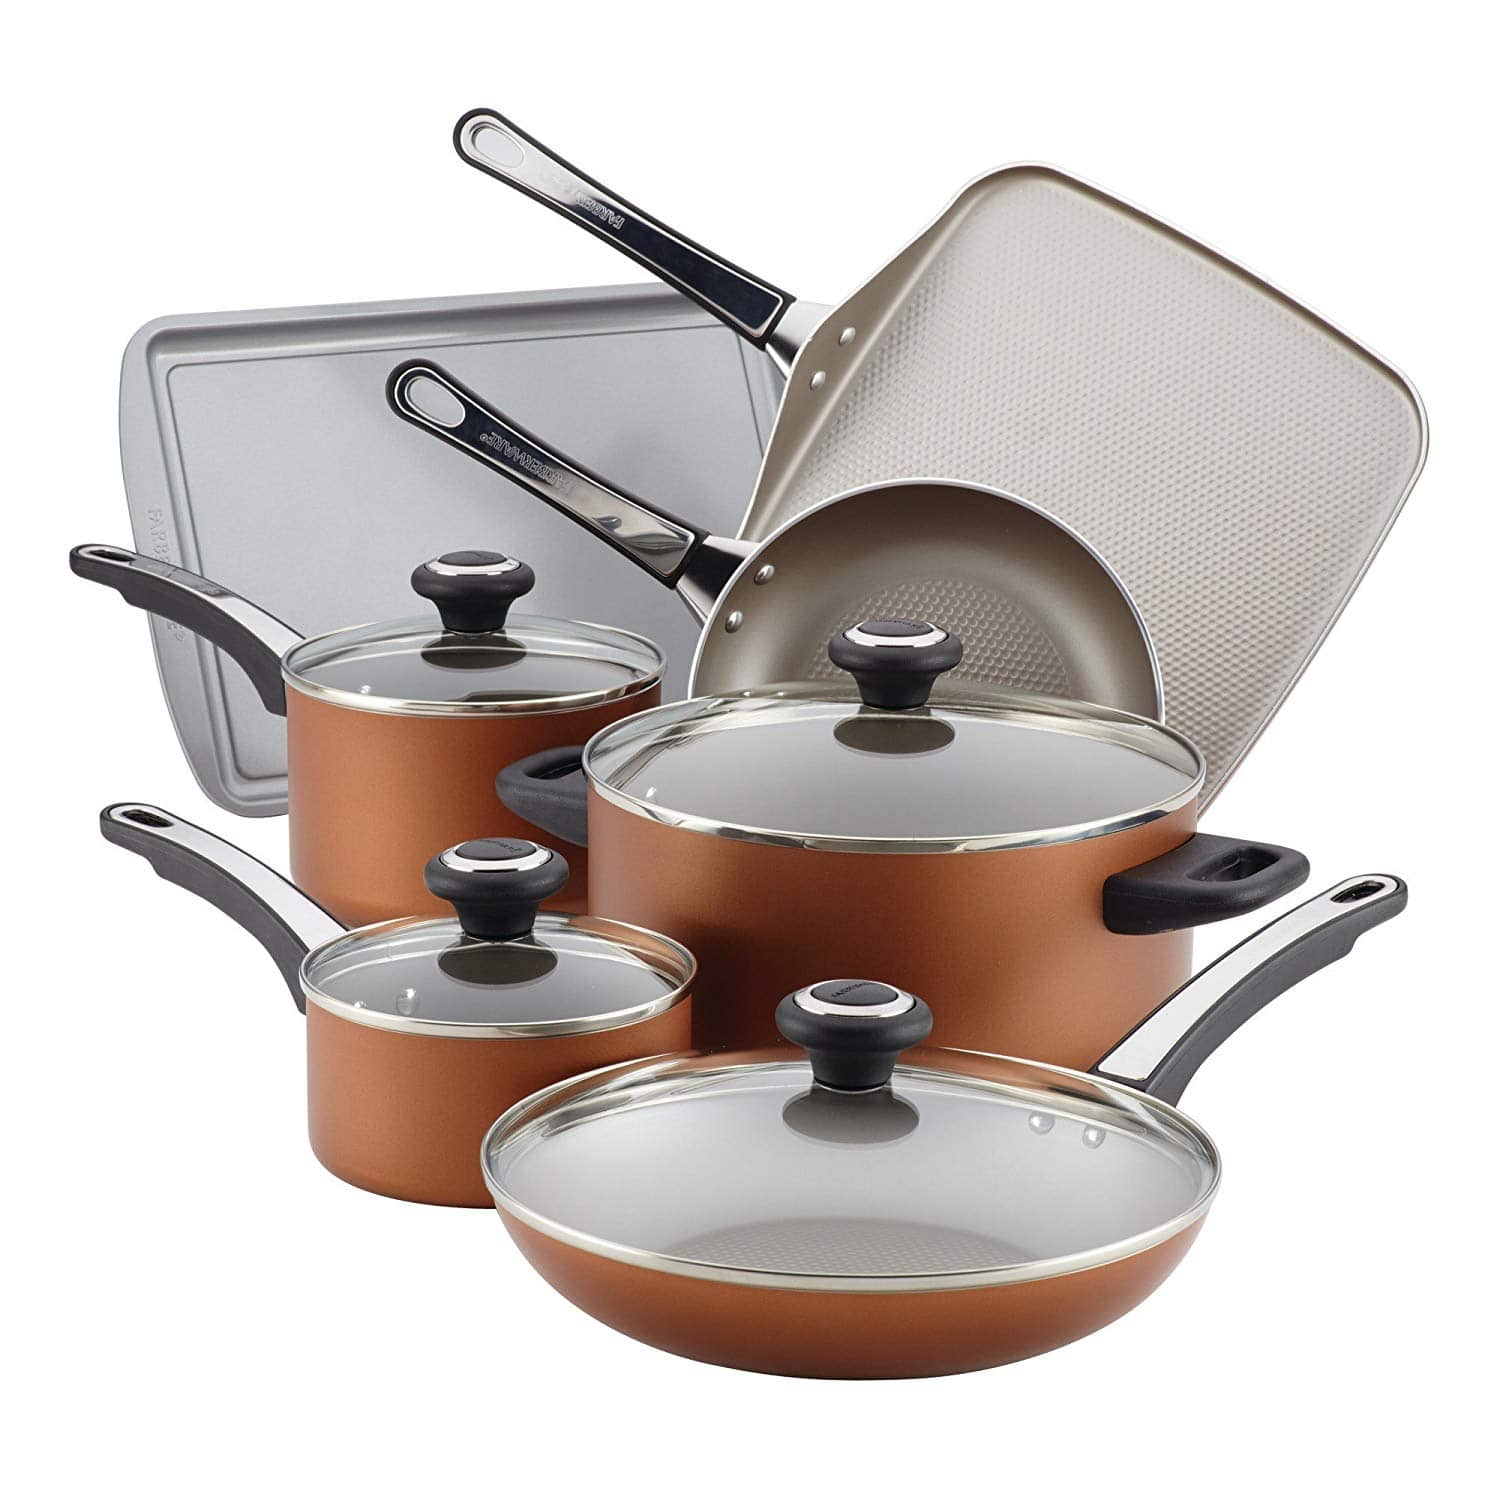 17-Piece Farberware Nonstick Cookware Set $34 + free shipping